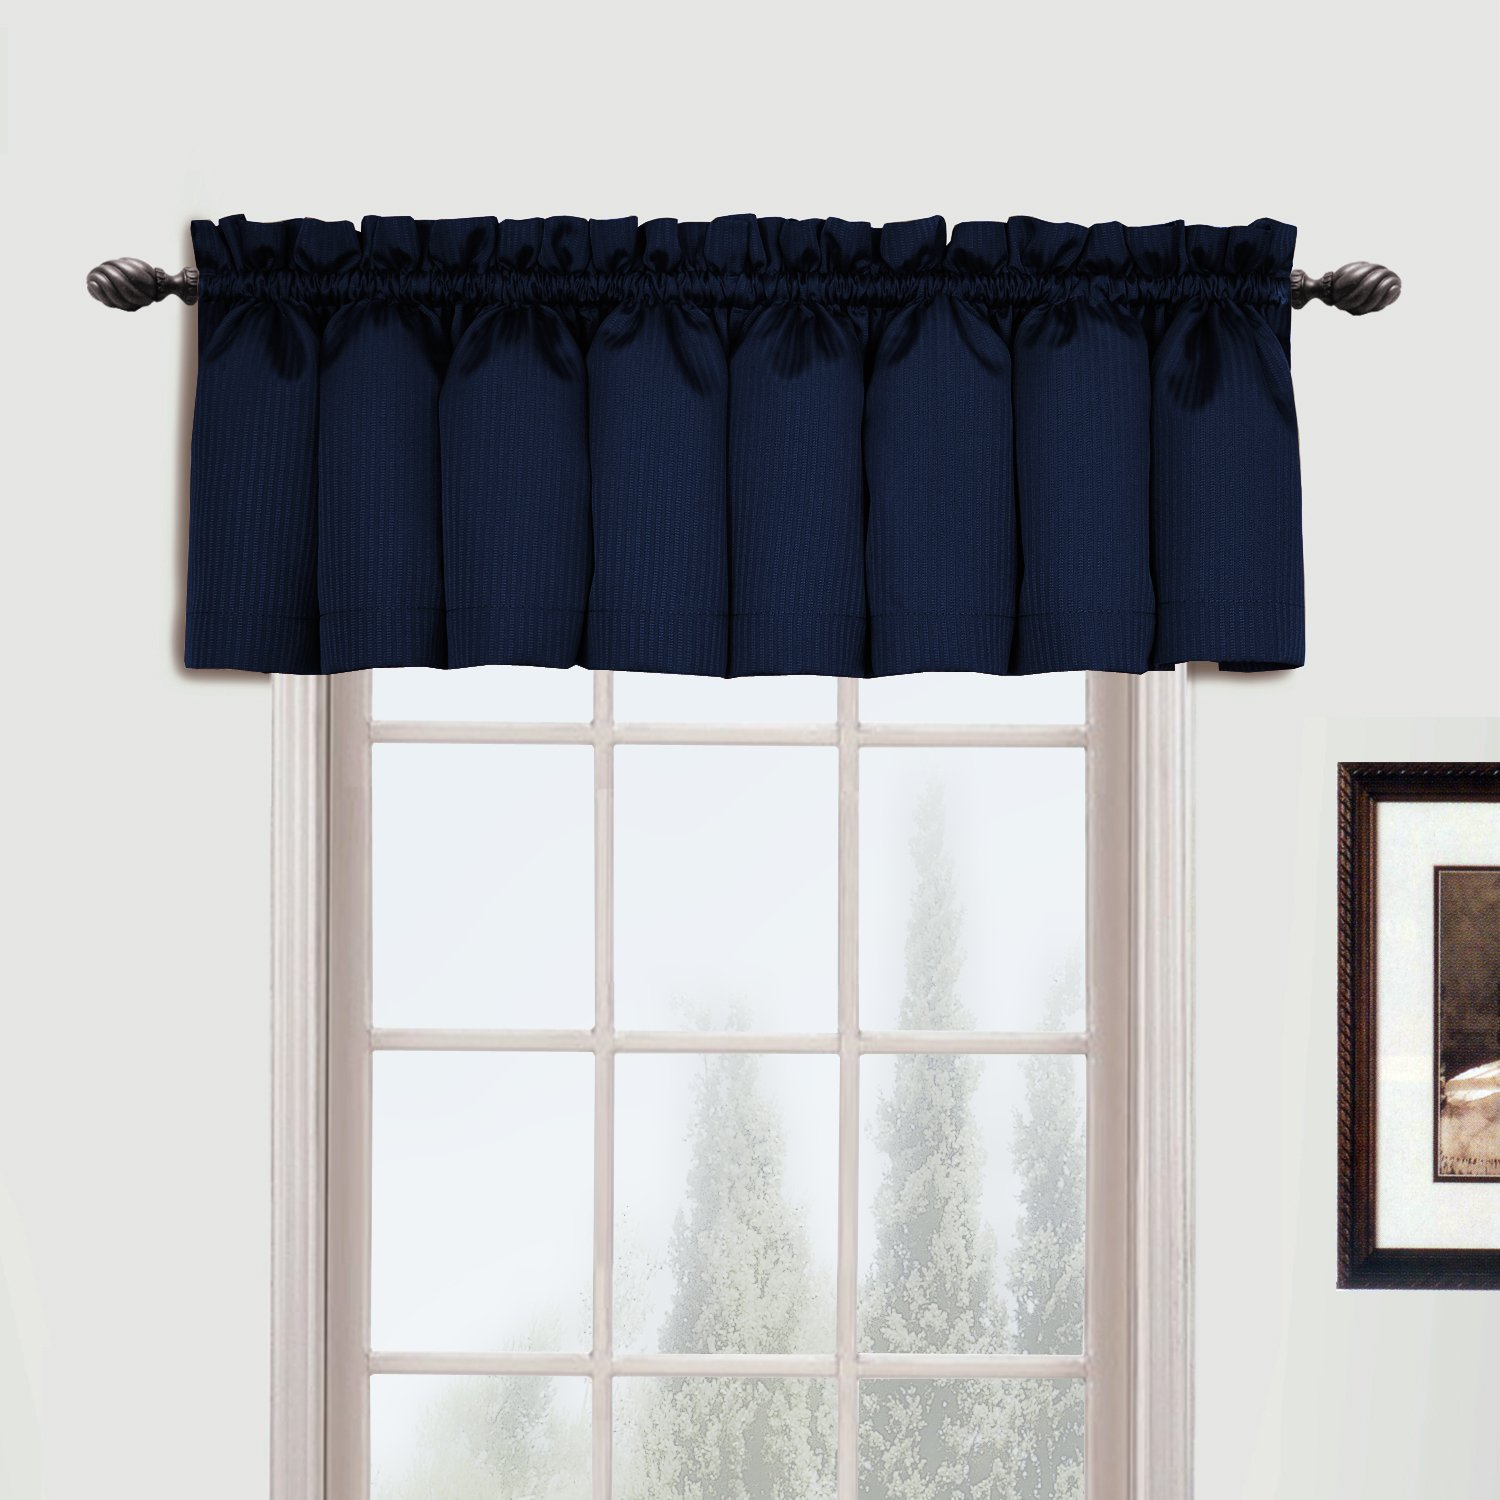 United Curtain Metro Woven Straight Valance, 54 by 16-Inch, Navy METVANY